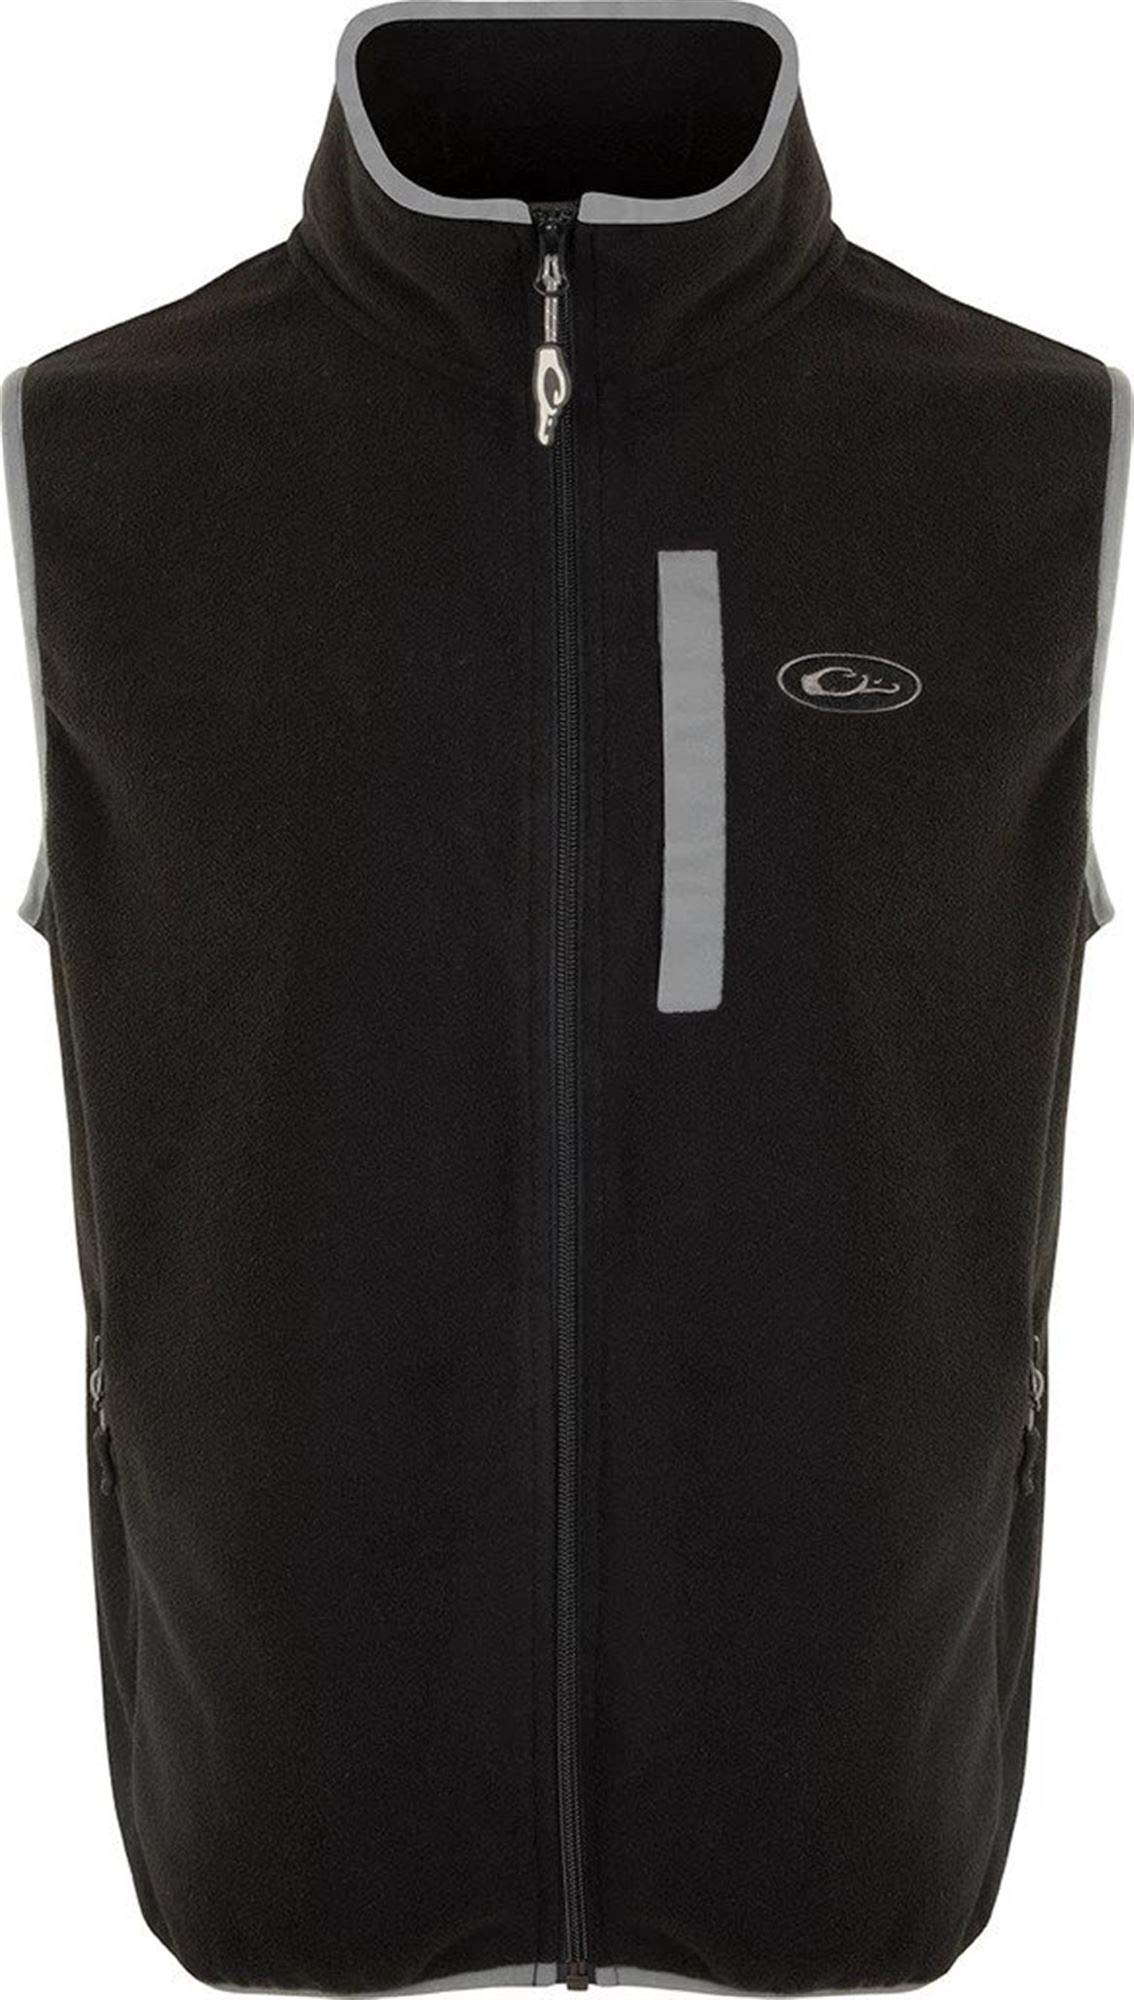 Drake Youth Camp Fleece Vest Black/Charcoal 10 by Drake